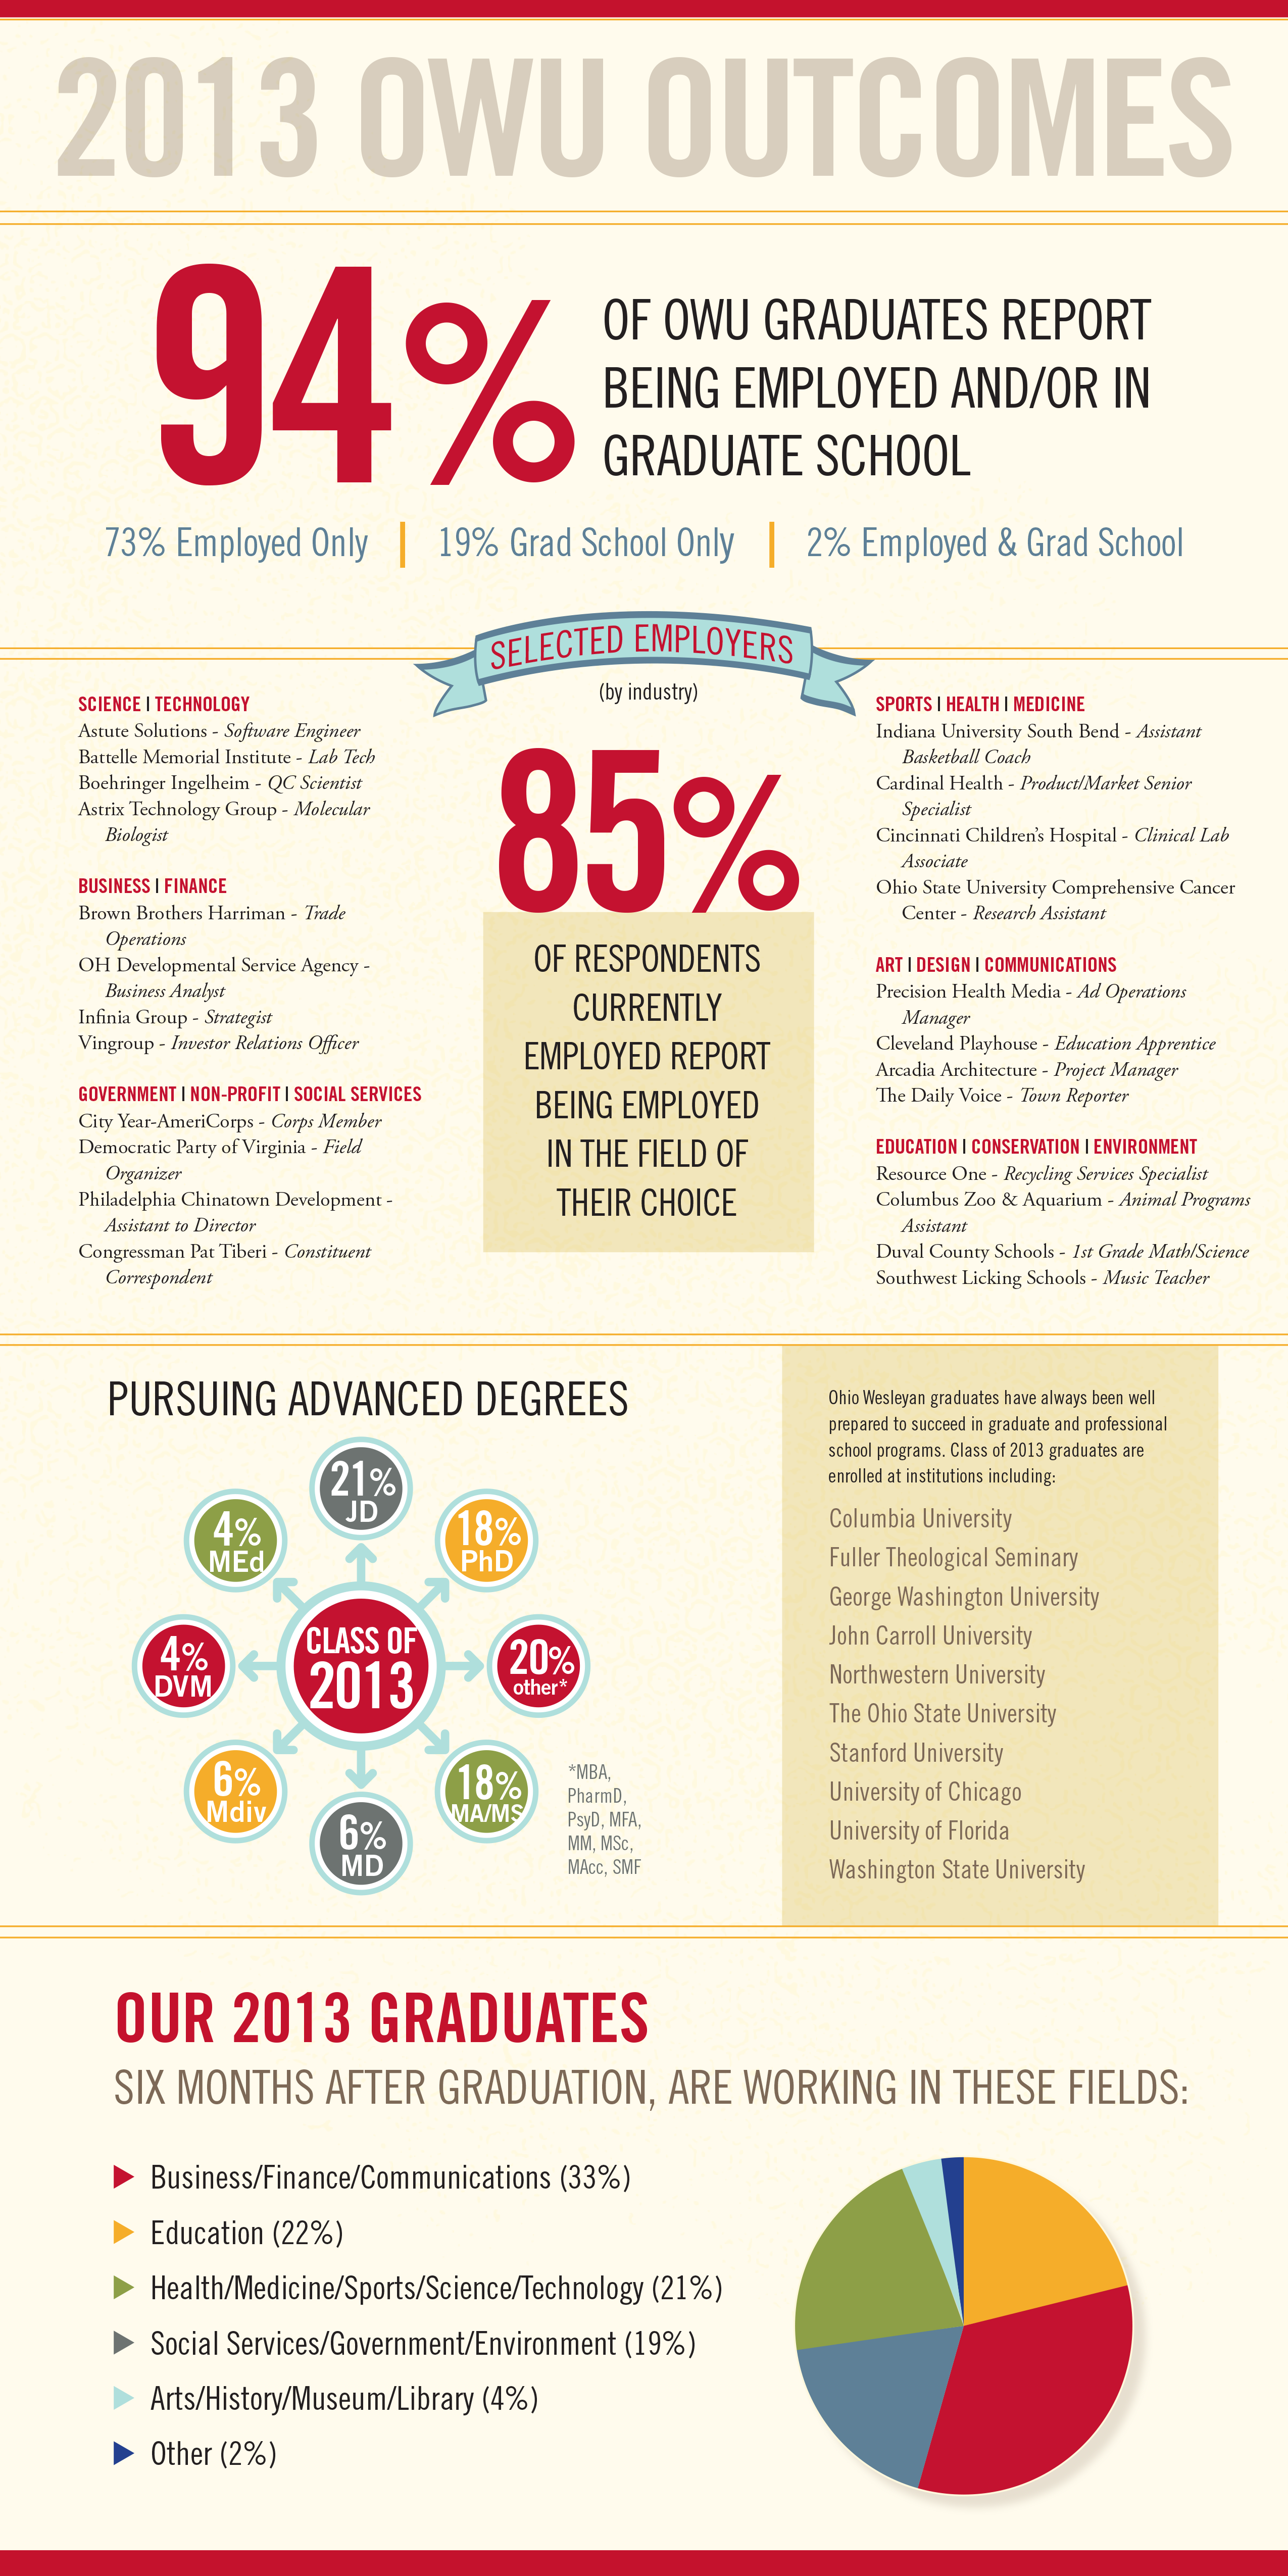 2013 Outcomes Report Infographic